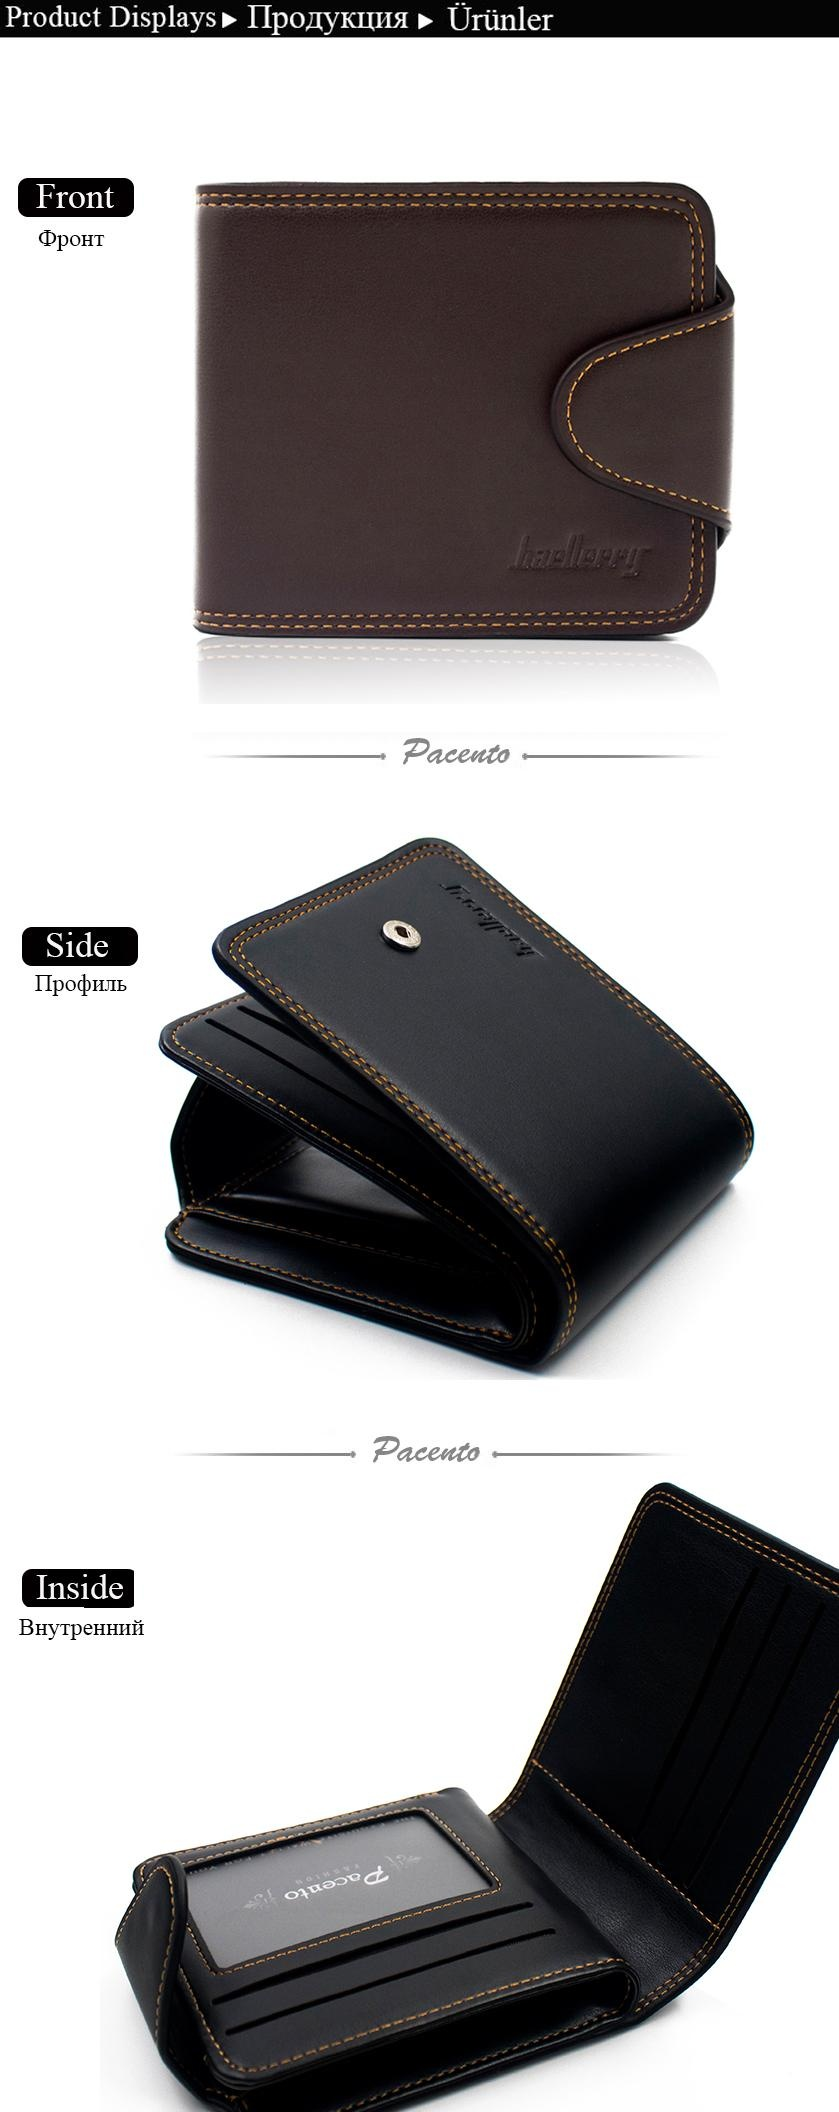 f66716b8f593 Specifications of DERI CUZDAN Famous Brand Men Wallet Leather Vintage Hasp  Wallet for Credit Cards Purse with Coin Pocket Male Wallet Casual Men - intl